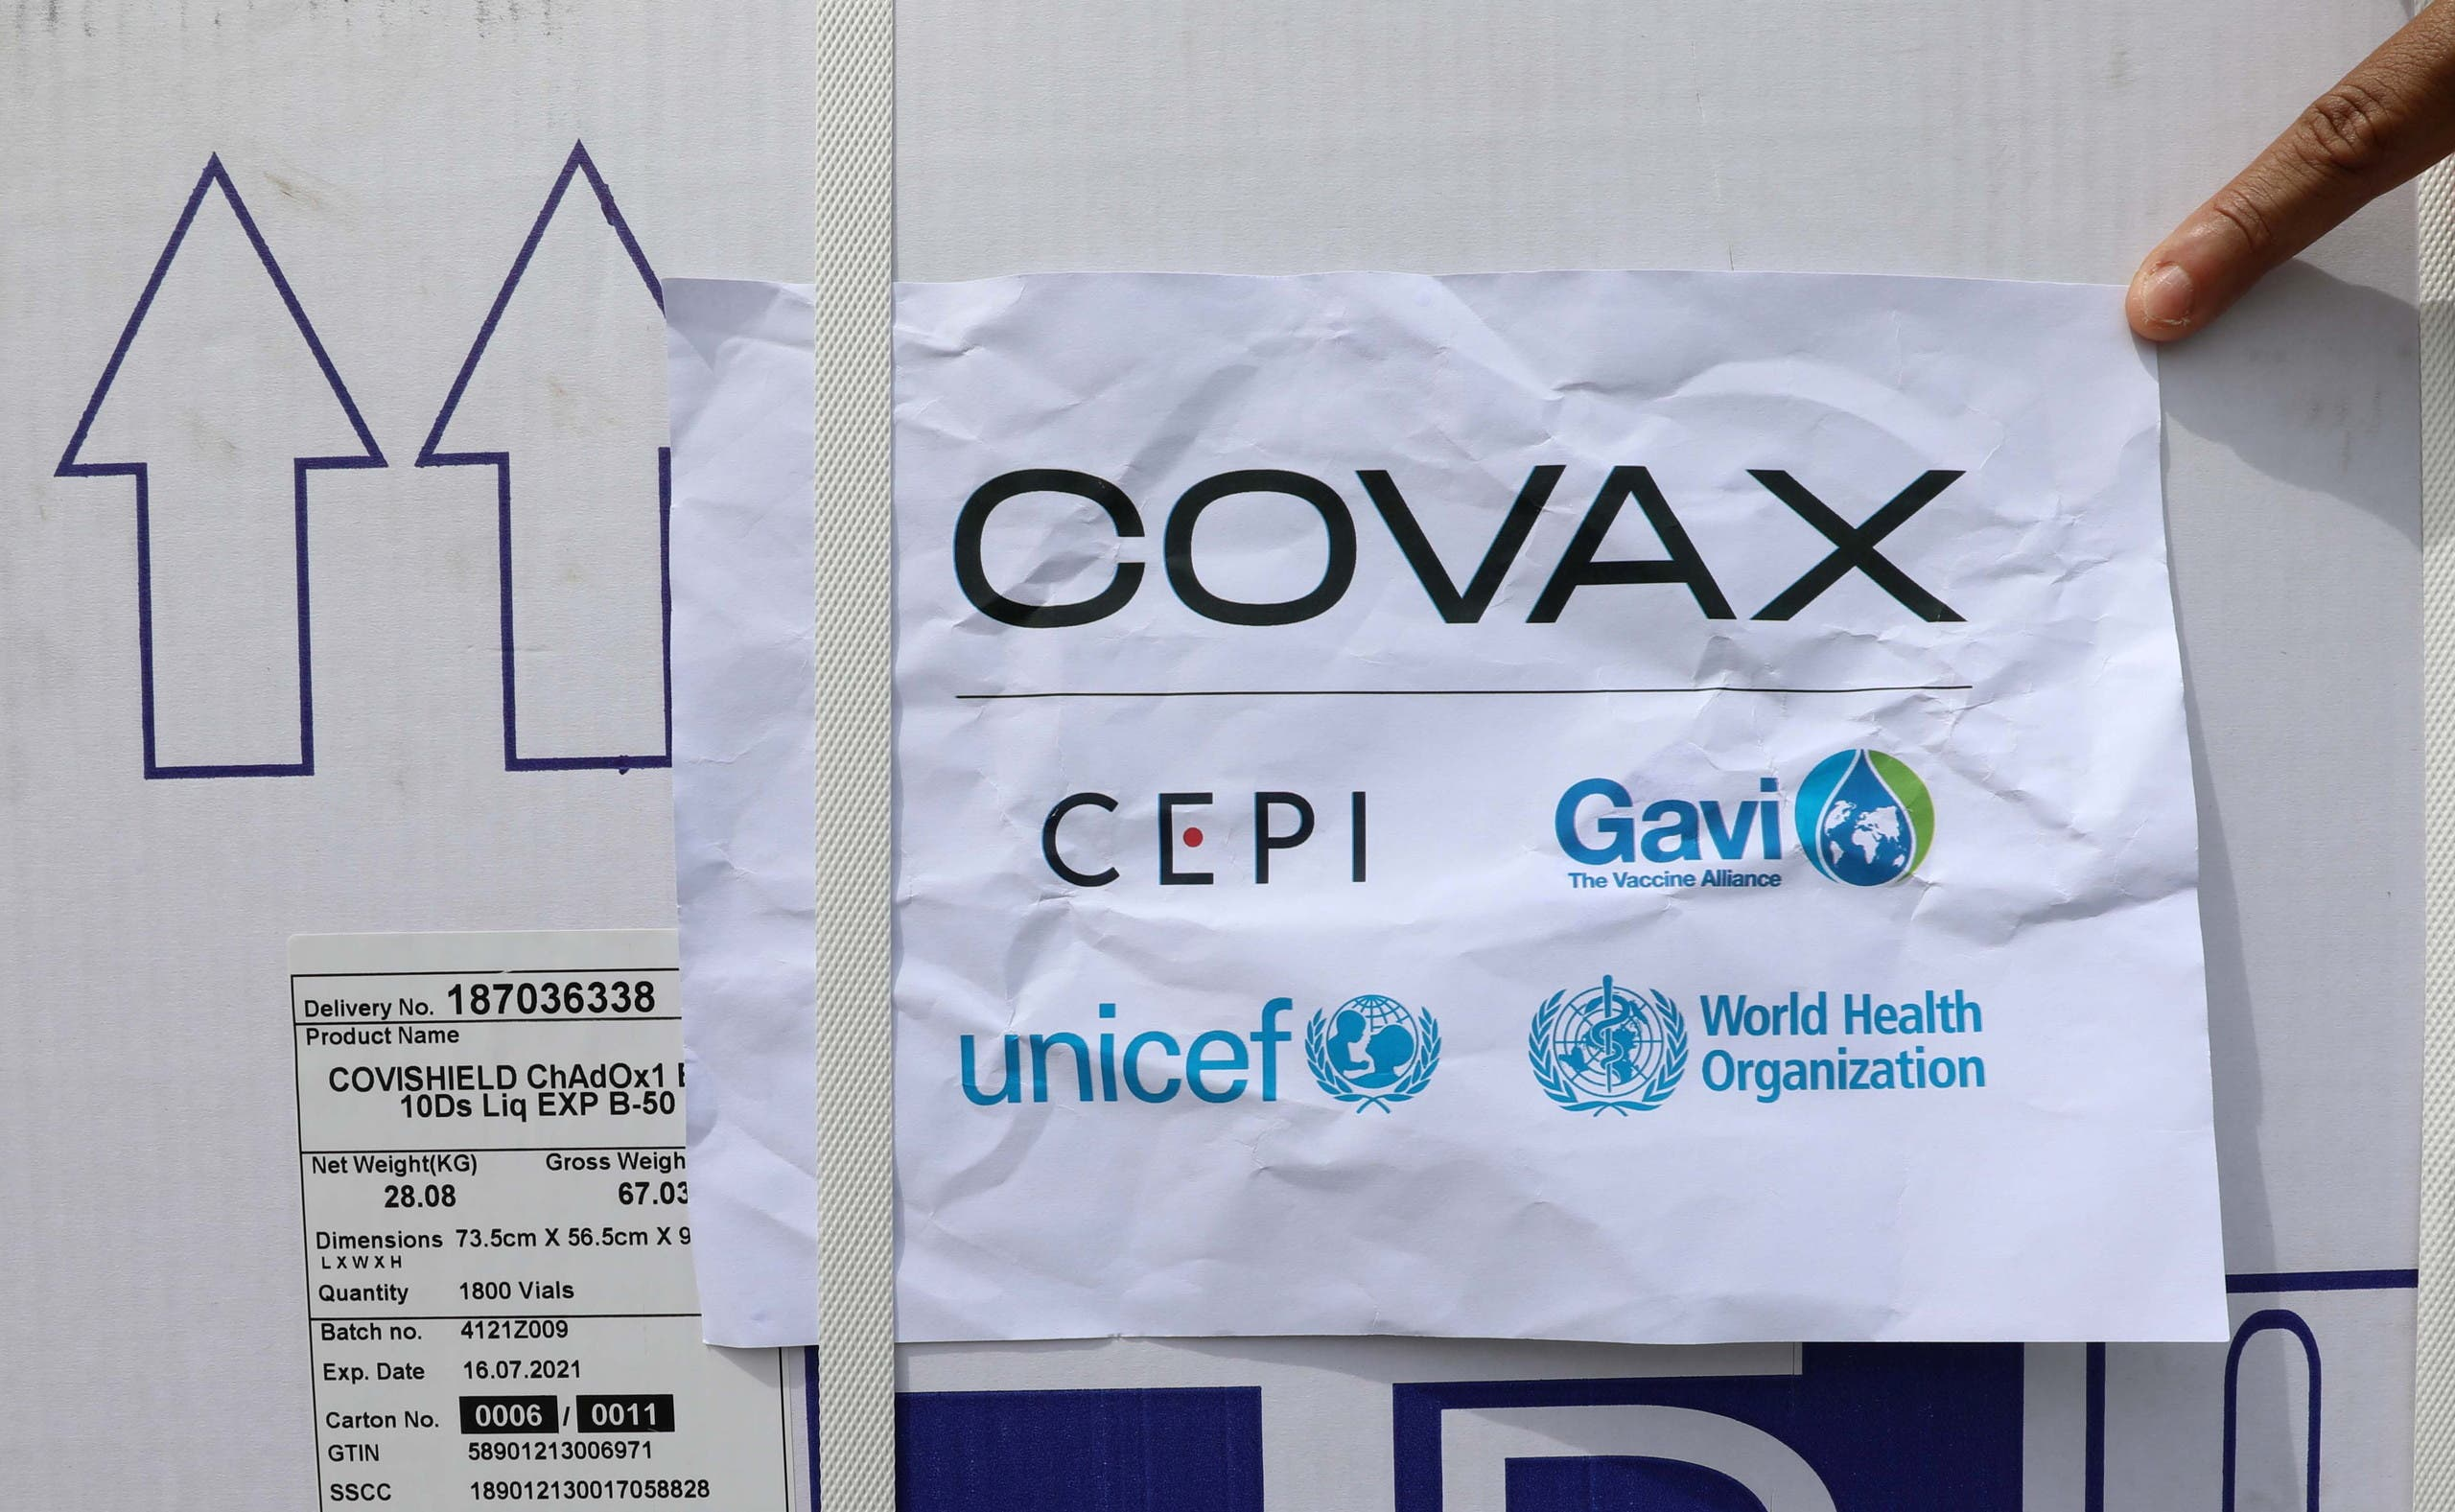 Workers offload the AstraZeneca/Oxford vaccines under the COVAX scheme against coronavirus disease (COVID-19) at the Aden Abdulle Osman Airport in Mogadishu, Somalia March 15, 2021. (File photo: Reuters)